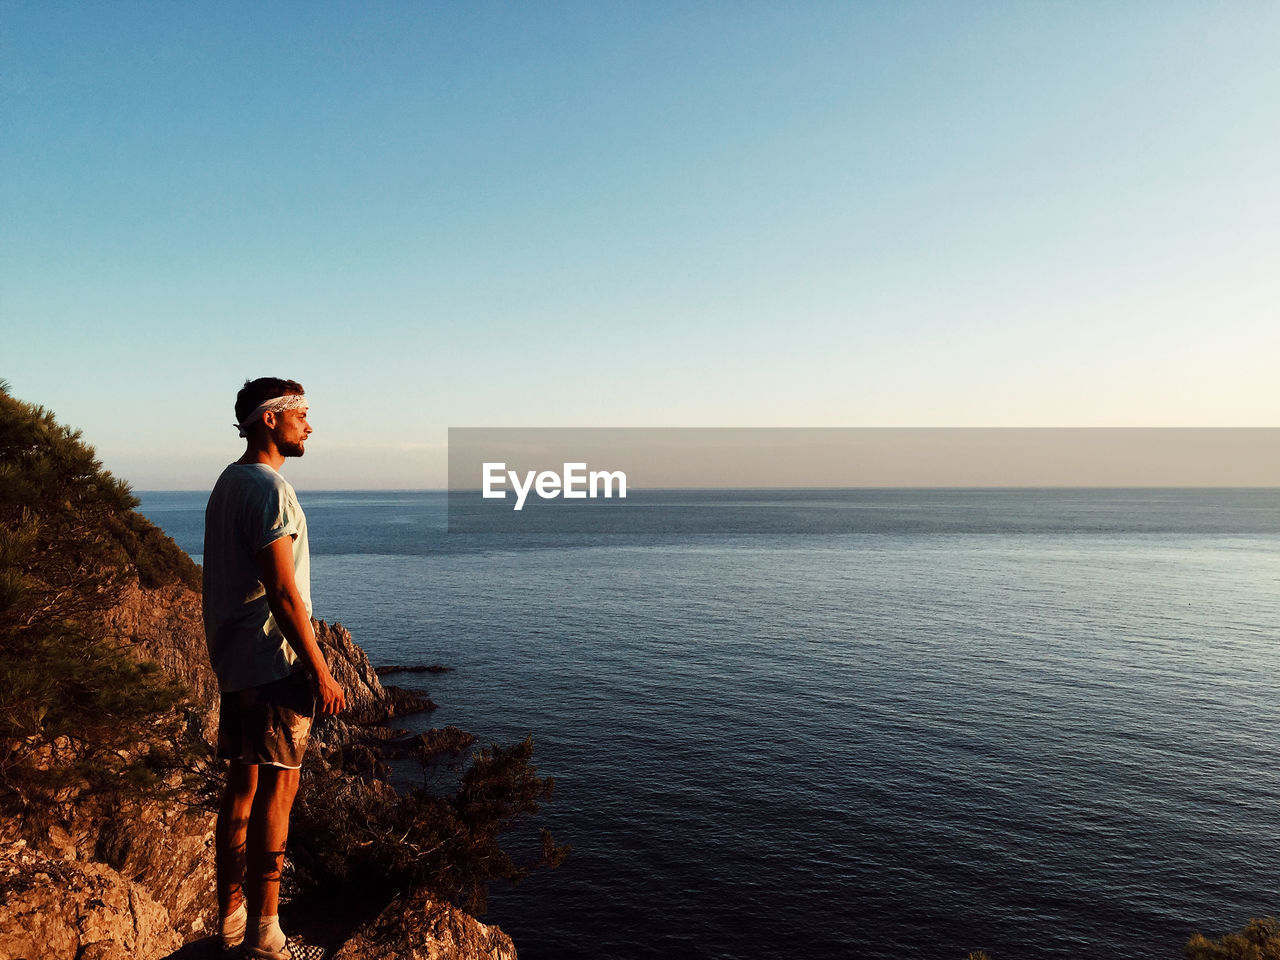 real people, sky, one person, beauty in nature, leisure activity, lifestyles, water, scenics - nature, sea, standing, clear sky, copy space, tranquility, young adult, nature, tranquil scene, full length, casual clothing, horizon over water, outdoors, looking at view